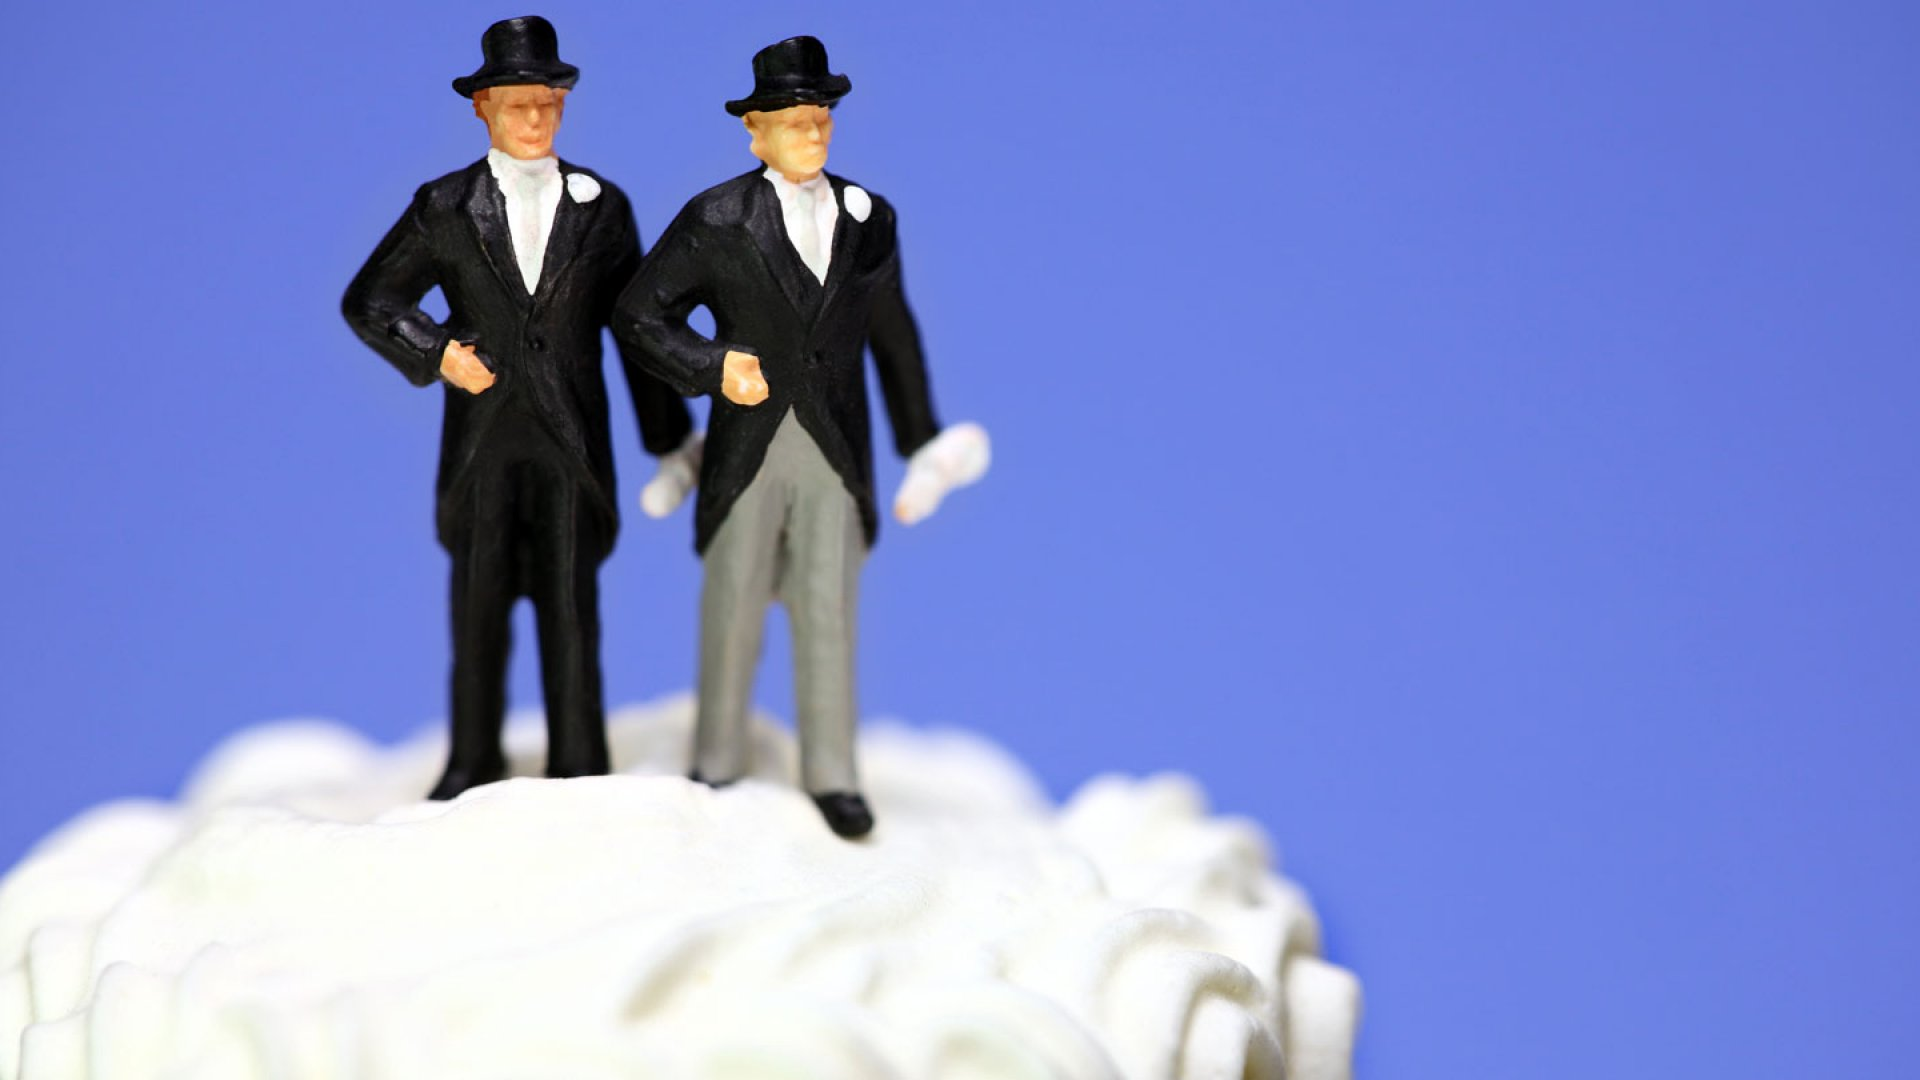 Benefits for Same-Sex Couples? Not Complicated (to Implement)